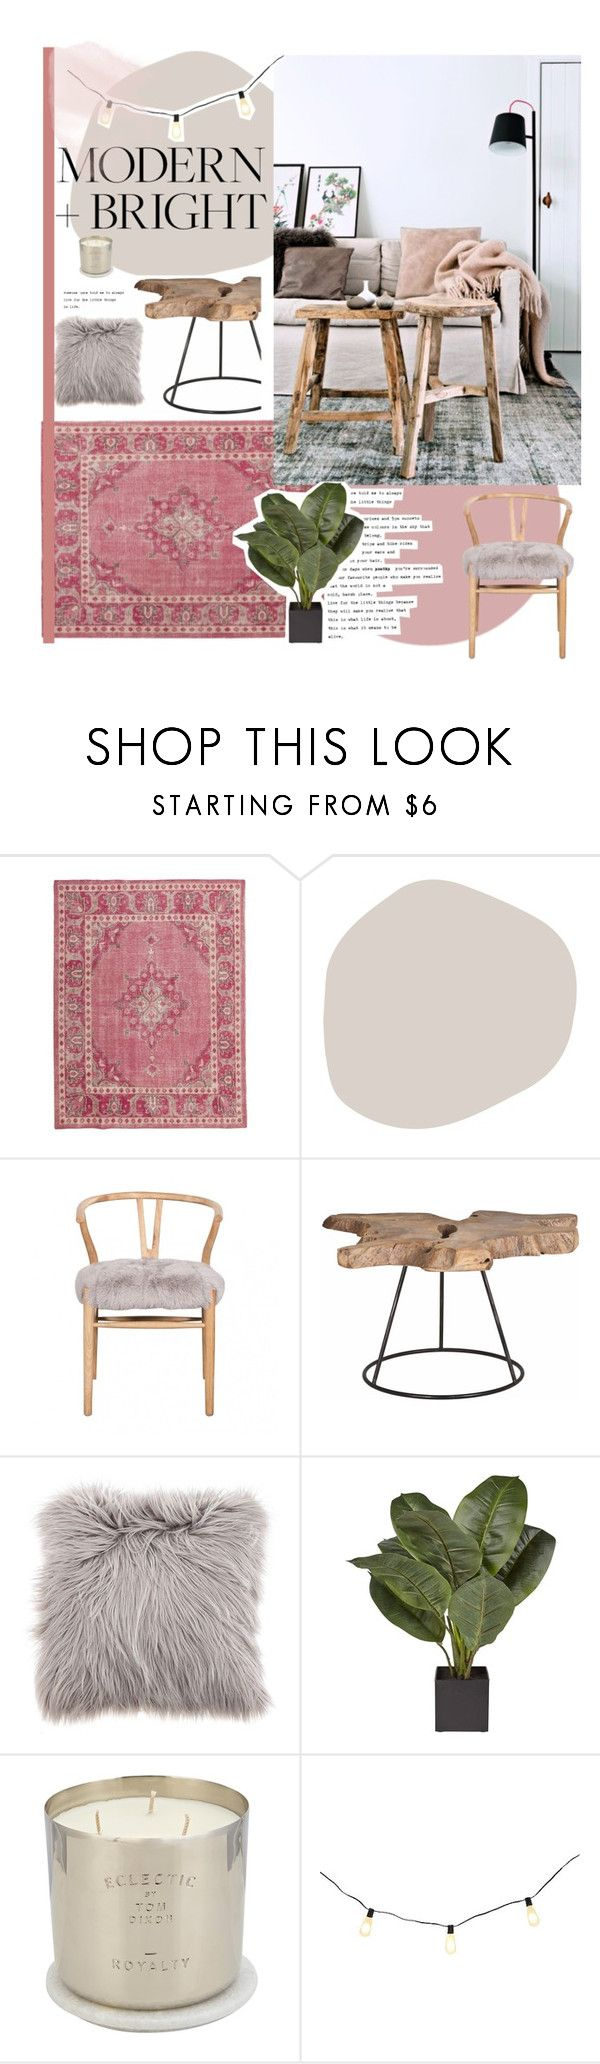 """Modern & bright living"" by anna-lena-als ❤ liked on Polyvore featuring interior, interiors, interior design, home, home decor, interior decorating, Orient Express Furniture, Tom Dixon, Smith & Hawken and modern"